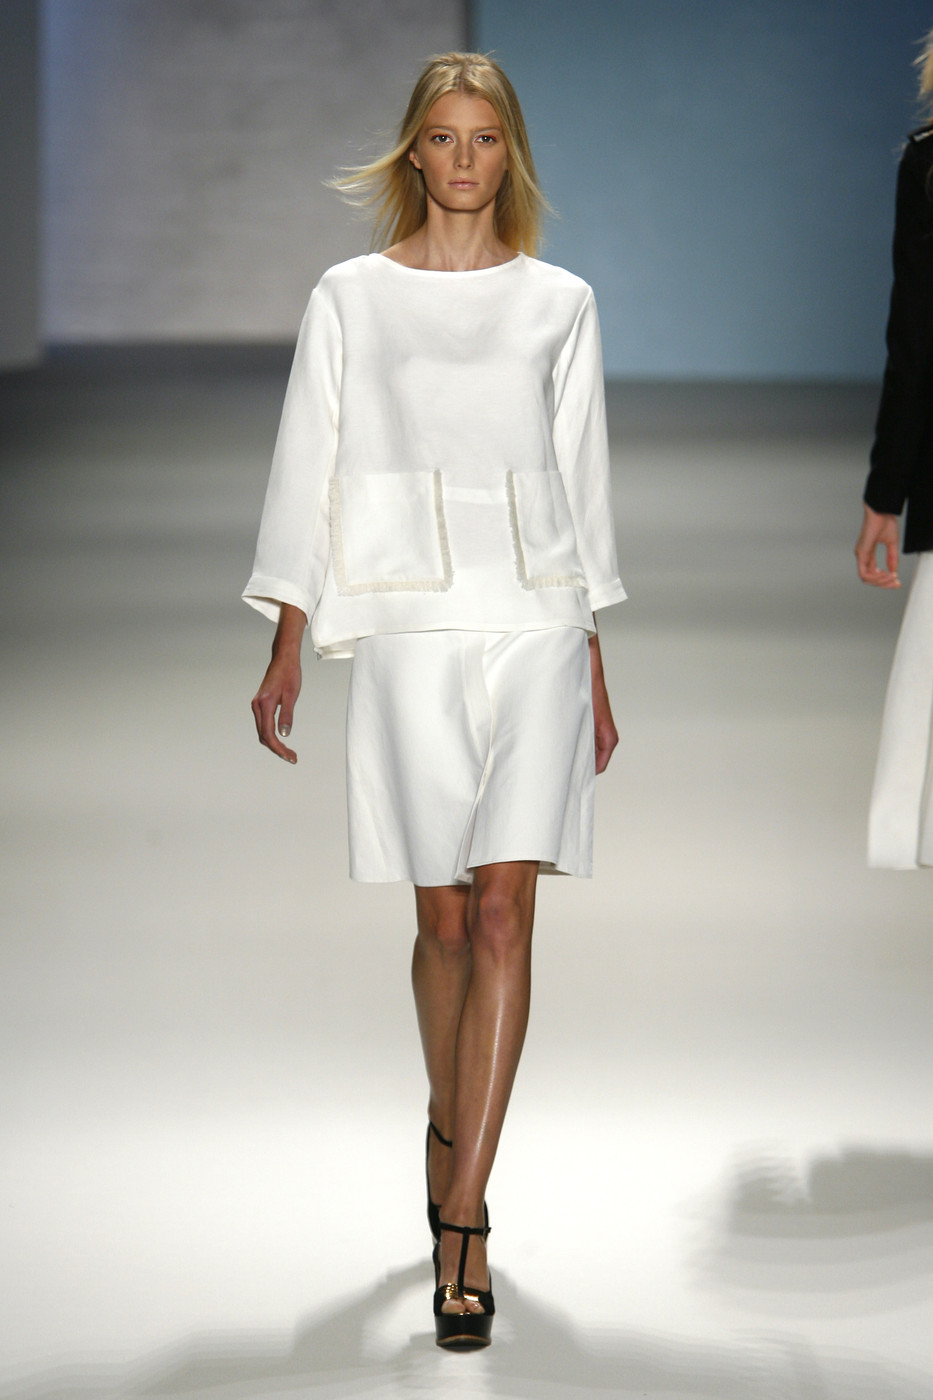 via fashioned by love | Derek Lam Spring/Summer 2011 White